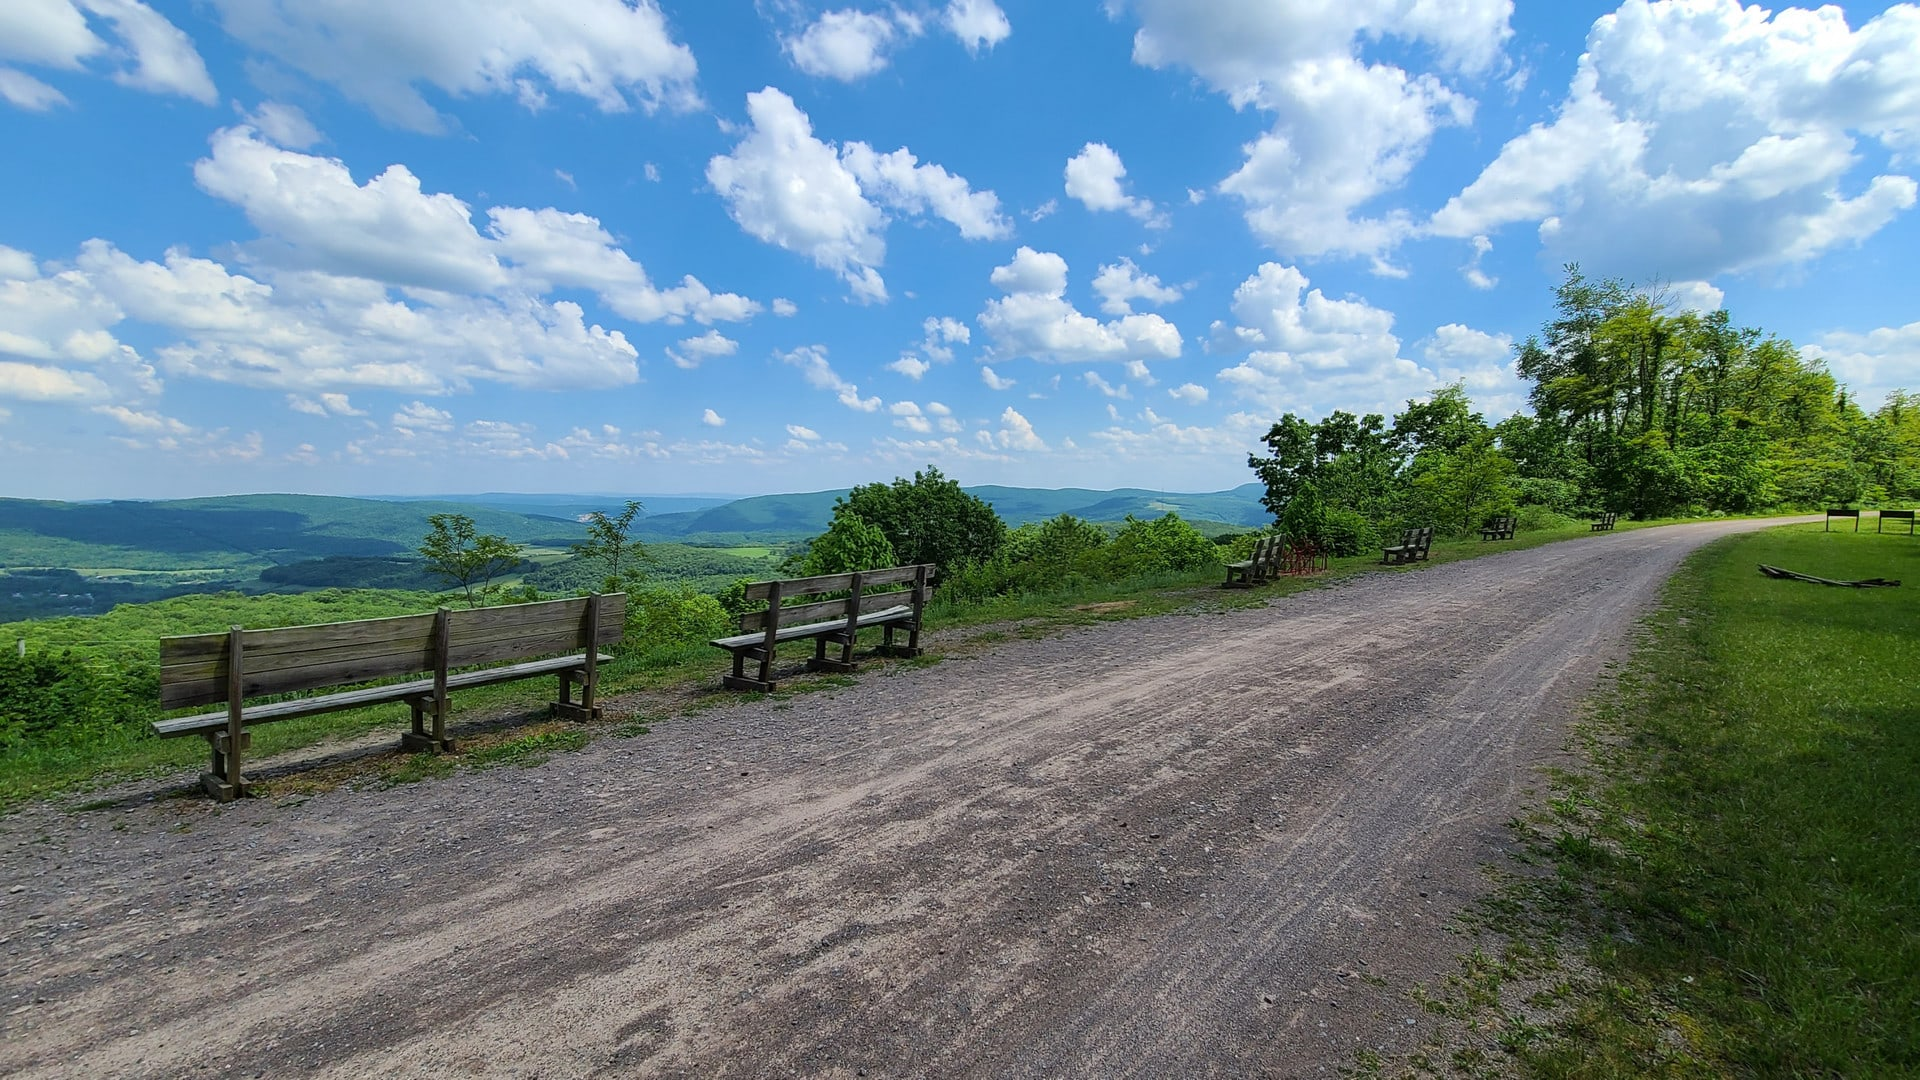 Fluffy clouds dot a beautiful blue sky. Benches line the path, looking out over a wide valley